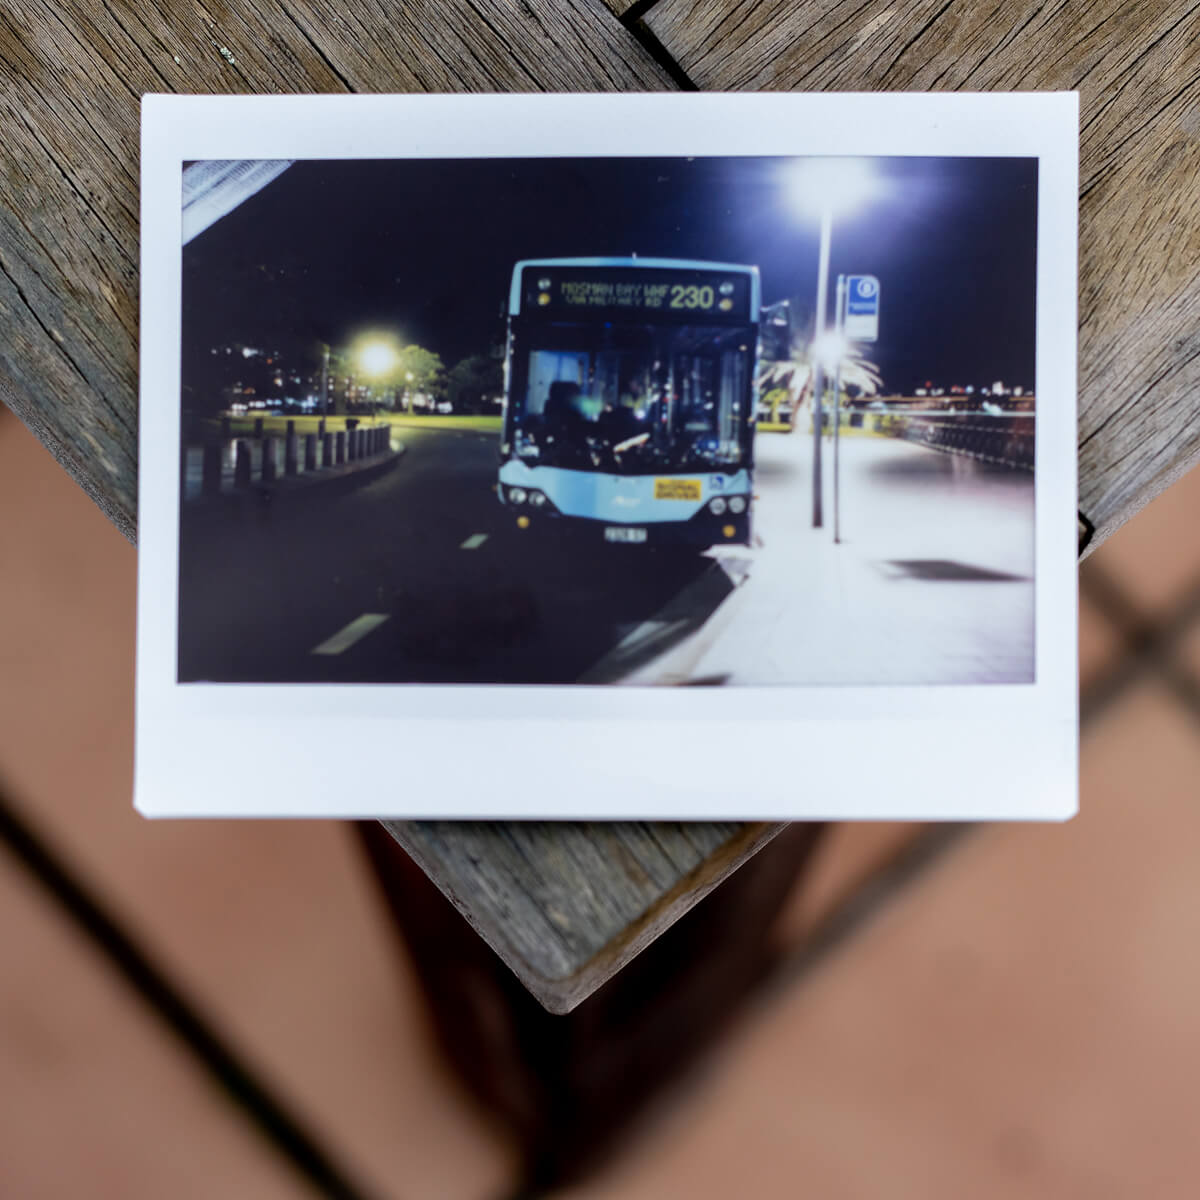 MiNT Instakon RF70 + Fujifilm Instax Wide - Bus